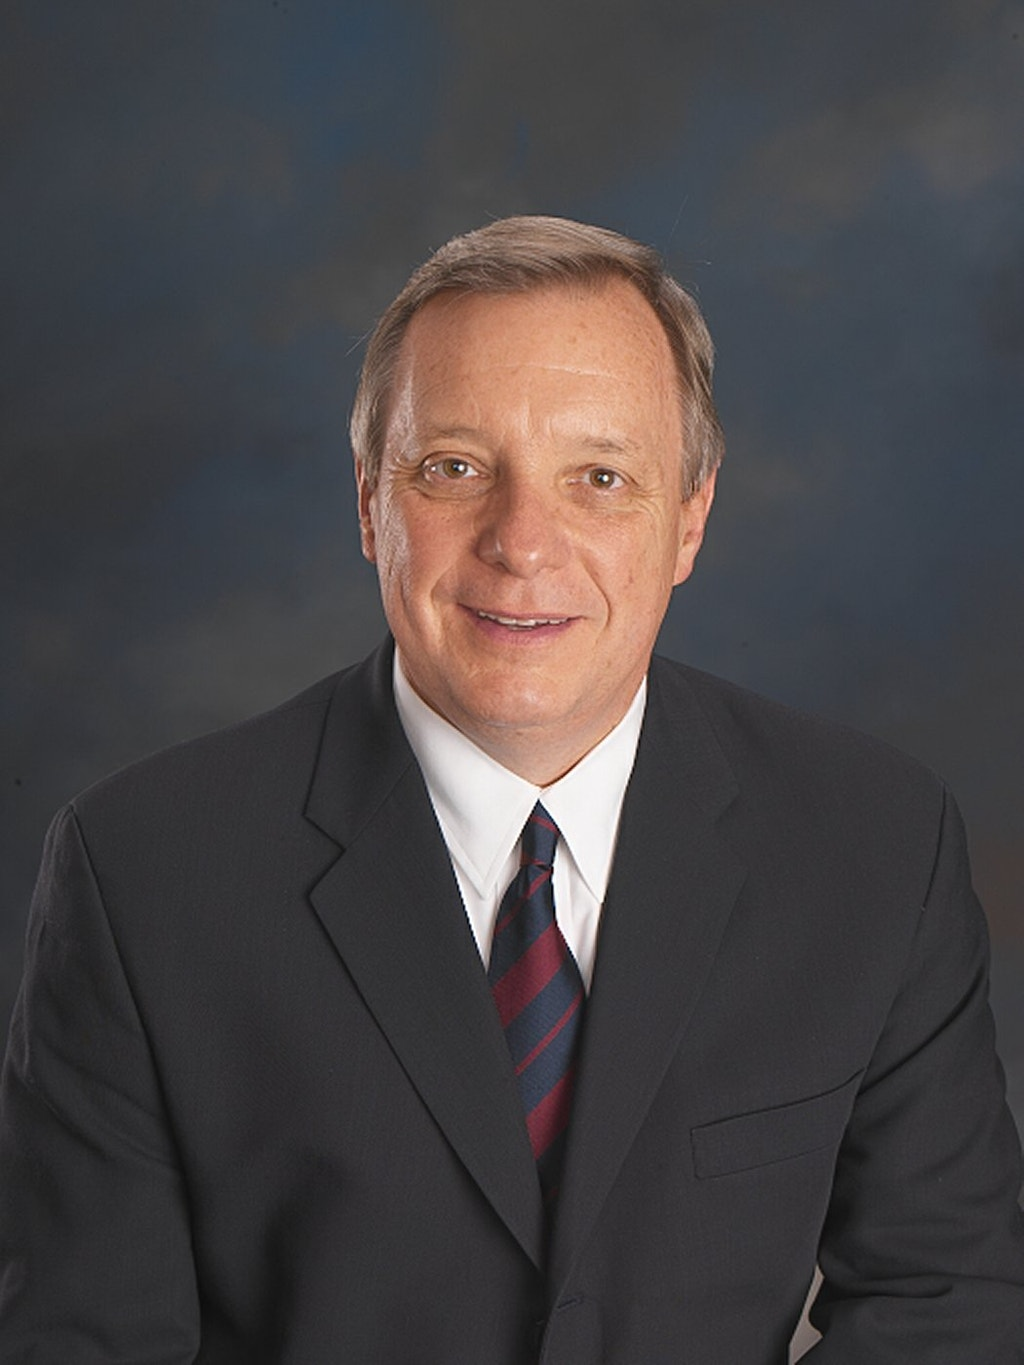 NEW VOICES: Senator Durbin of Illinois Changes Stance on Death Penalty